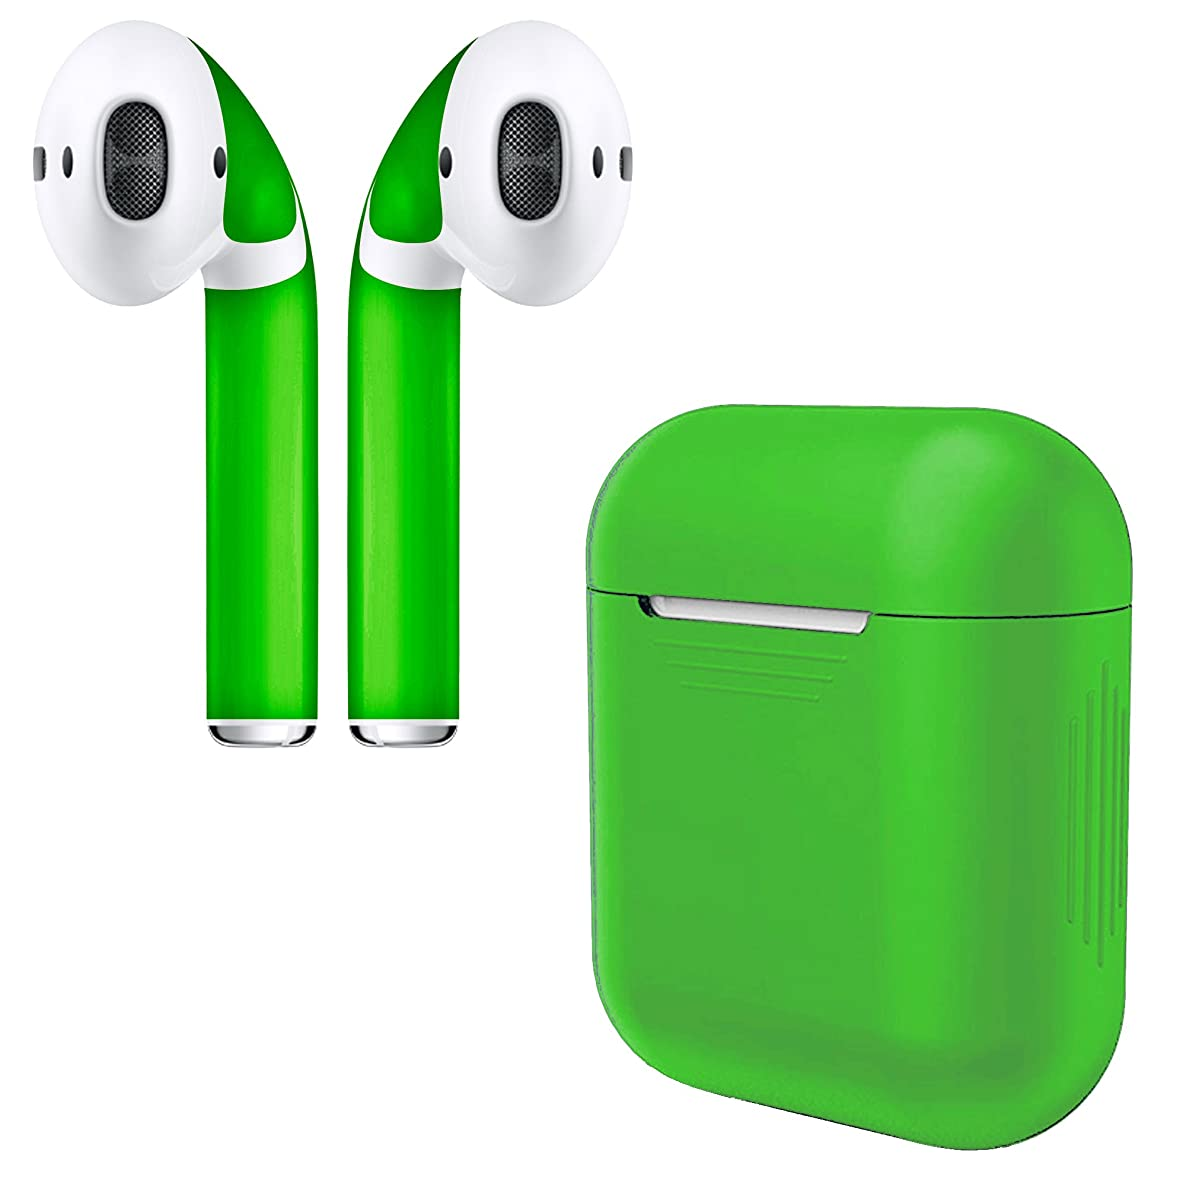 APSkins Silicone Case and Stylish Skins Compatible with Apple AirPod Accessories (Green Case & Skin)